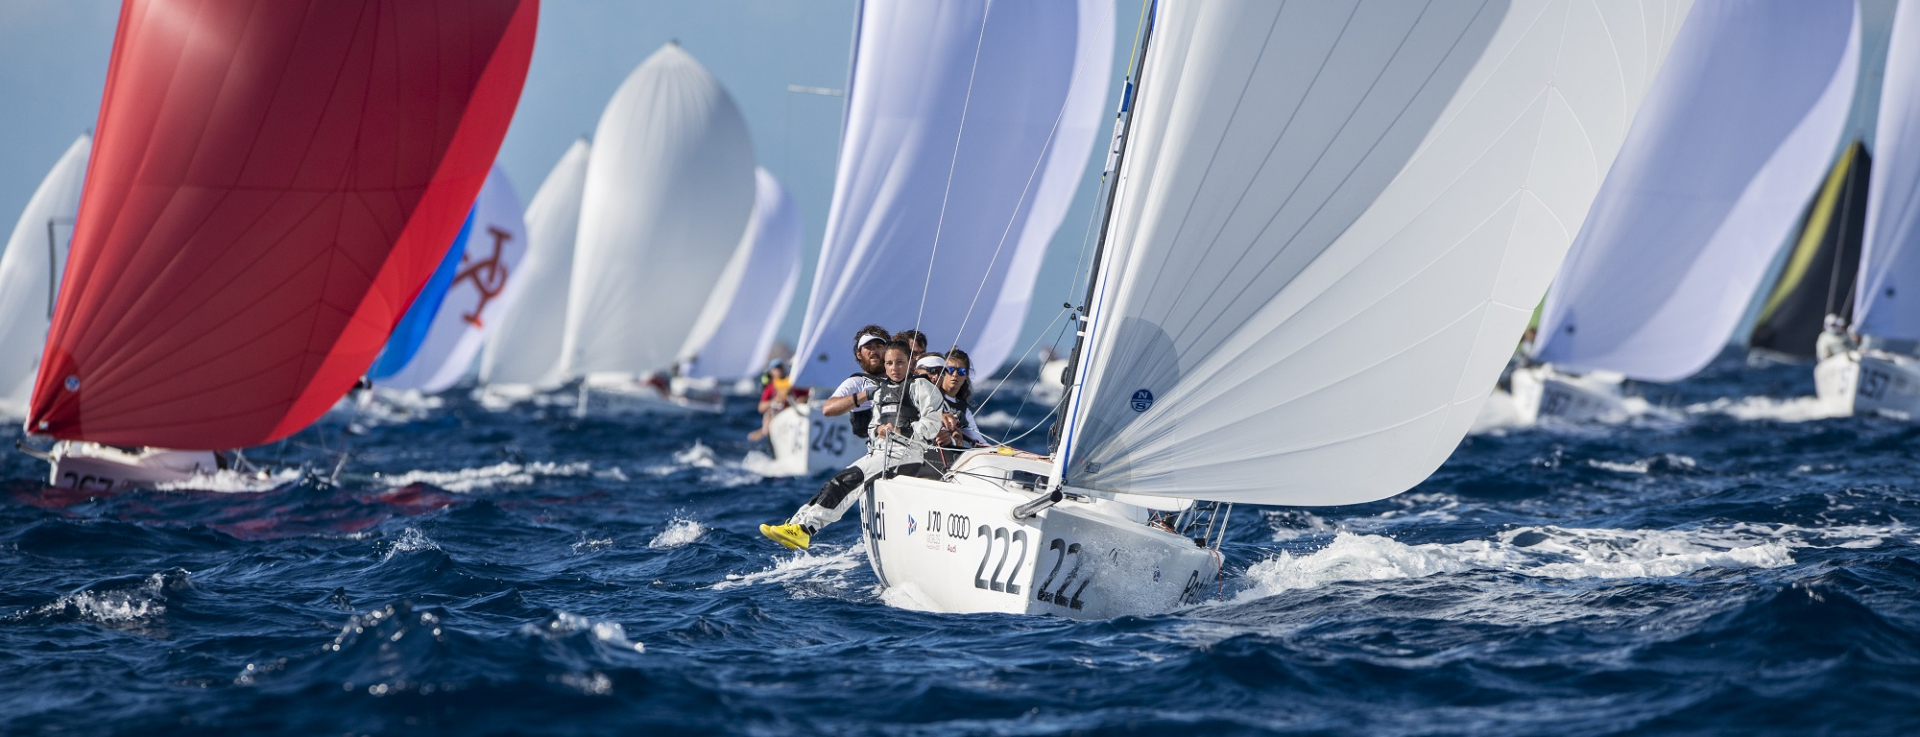 Audi J/70 World Championship: Un inizio memorabile - NEWS - Yacht Club Costa Smeralda